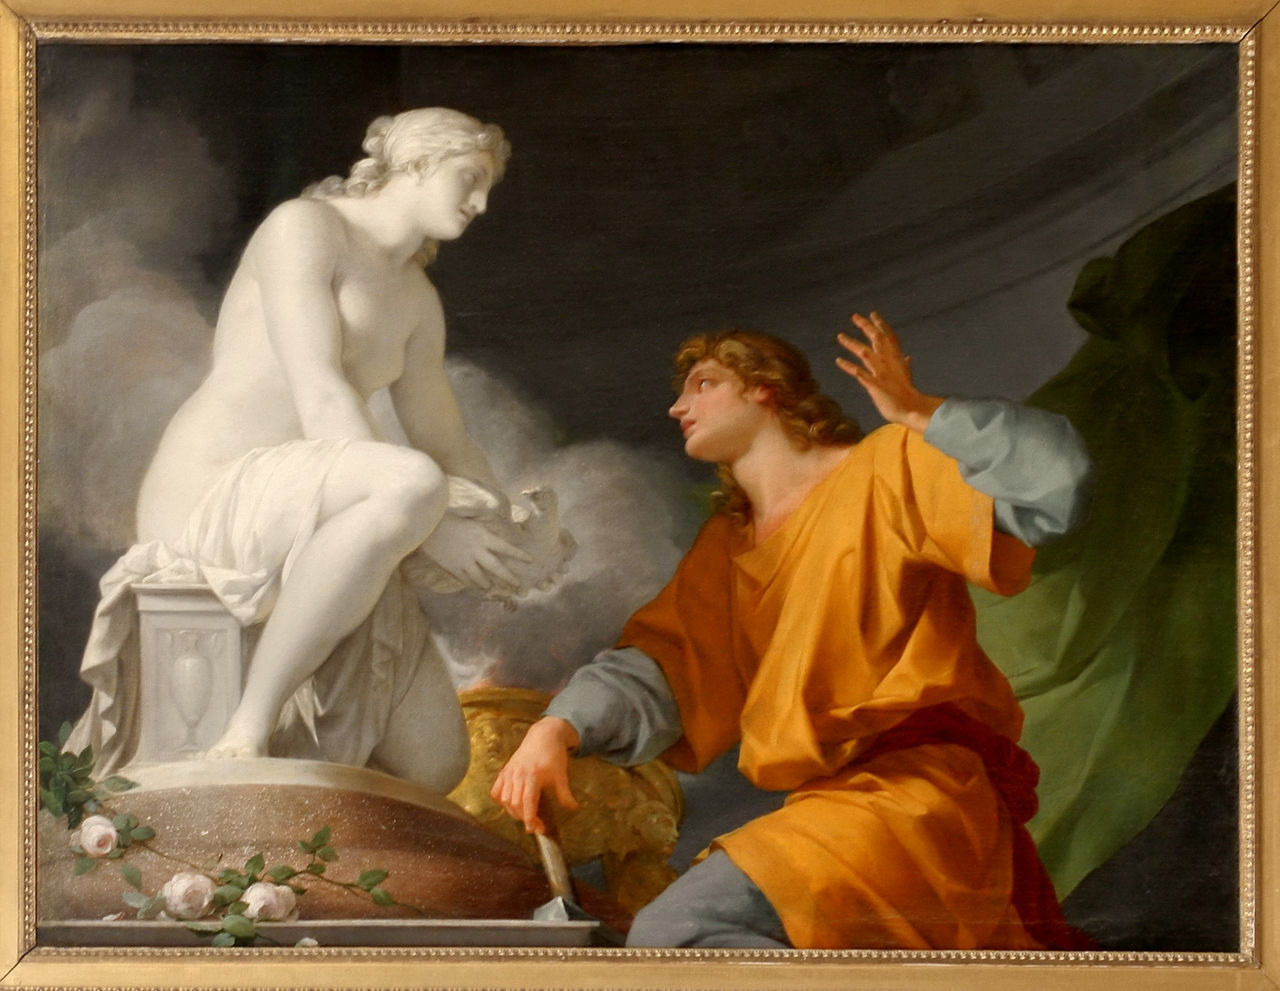 Pygmalion talking to the statue of Galatea, before she became human.